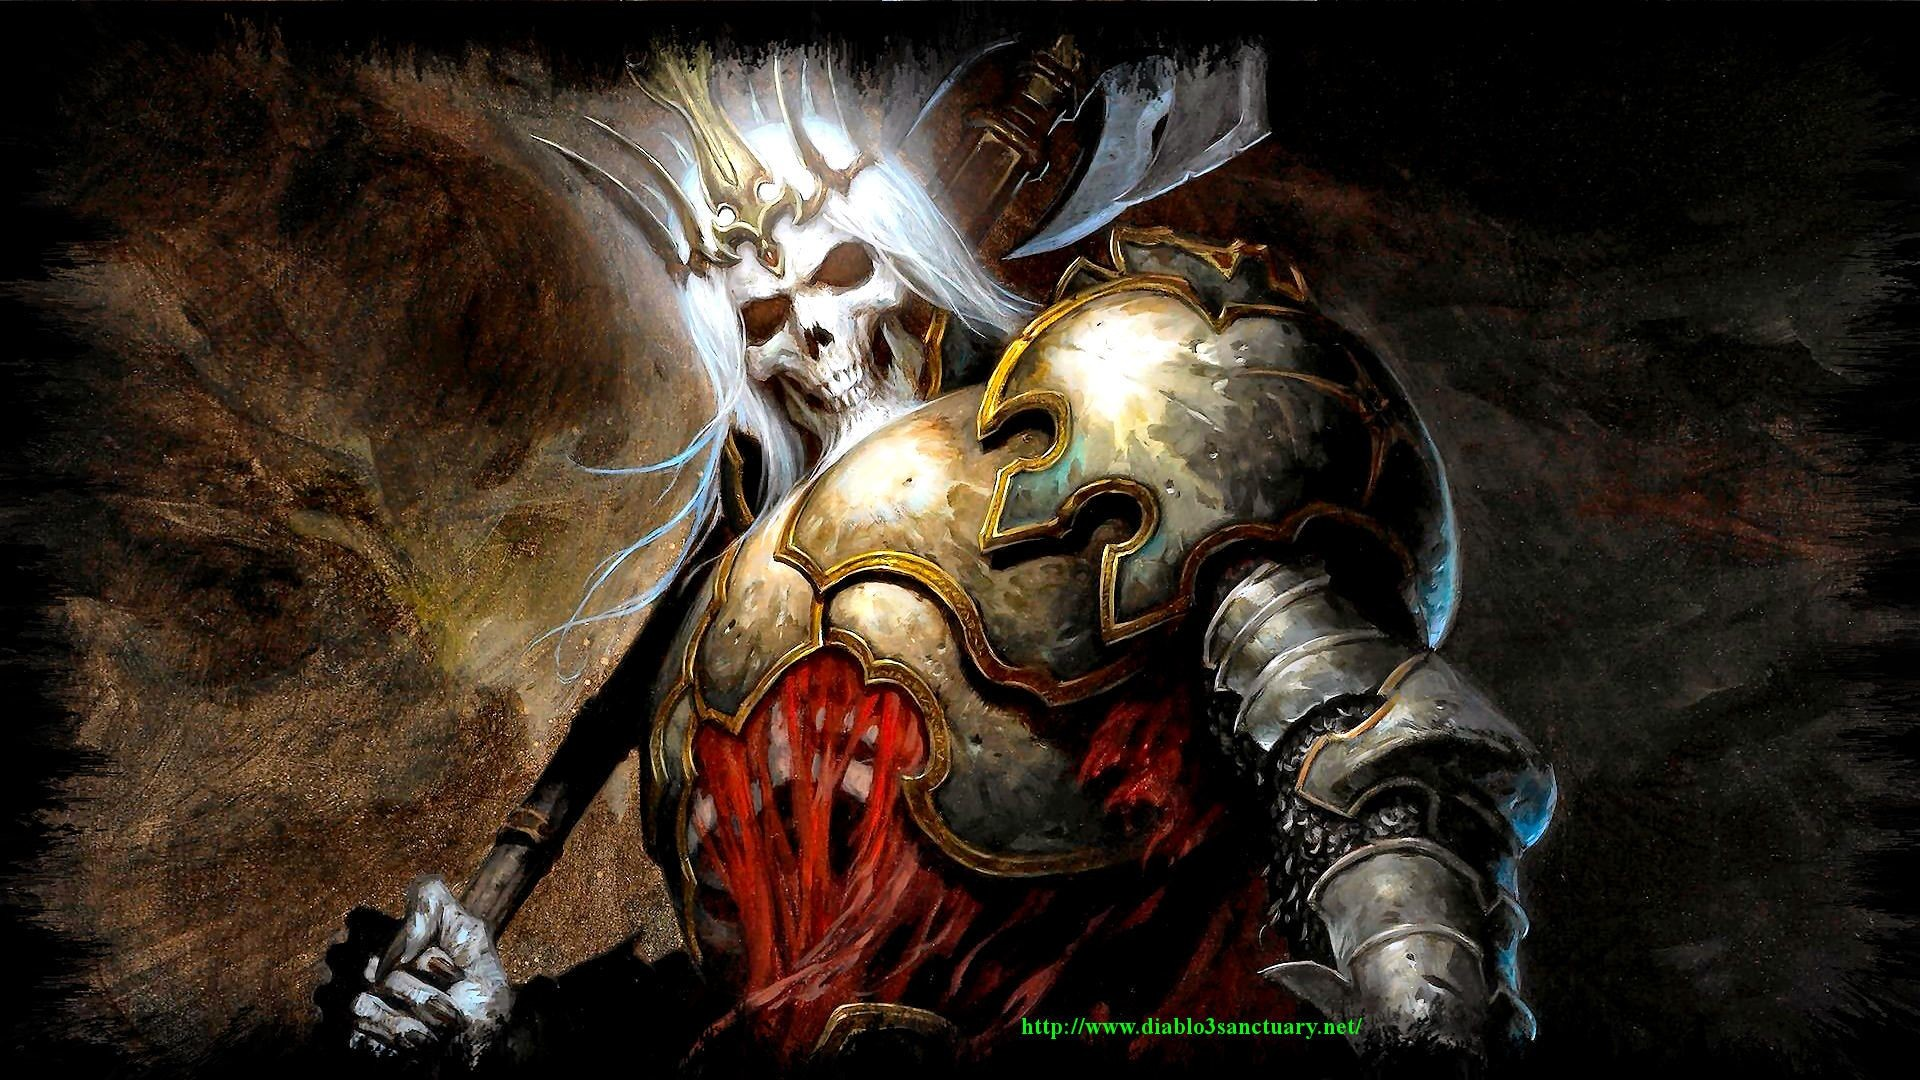 Hd Diablo 3 Wallpapers 73 Background Pictures